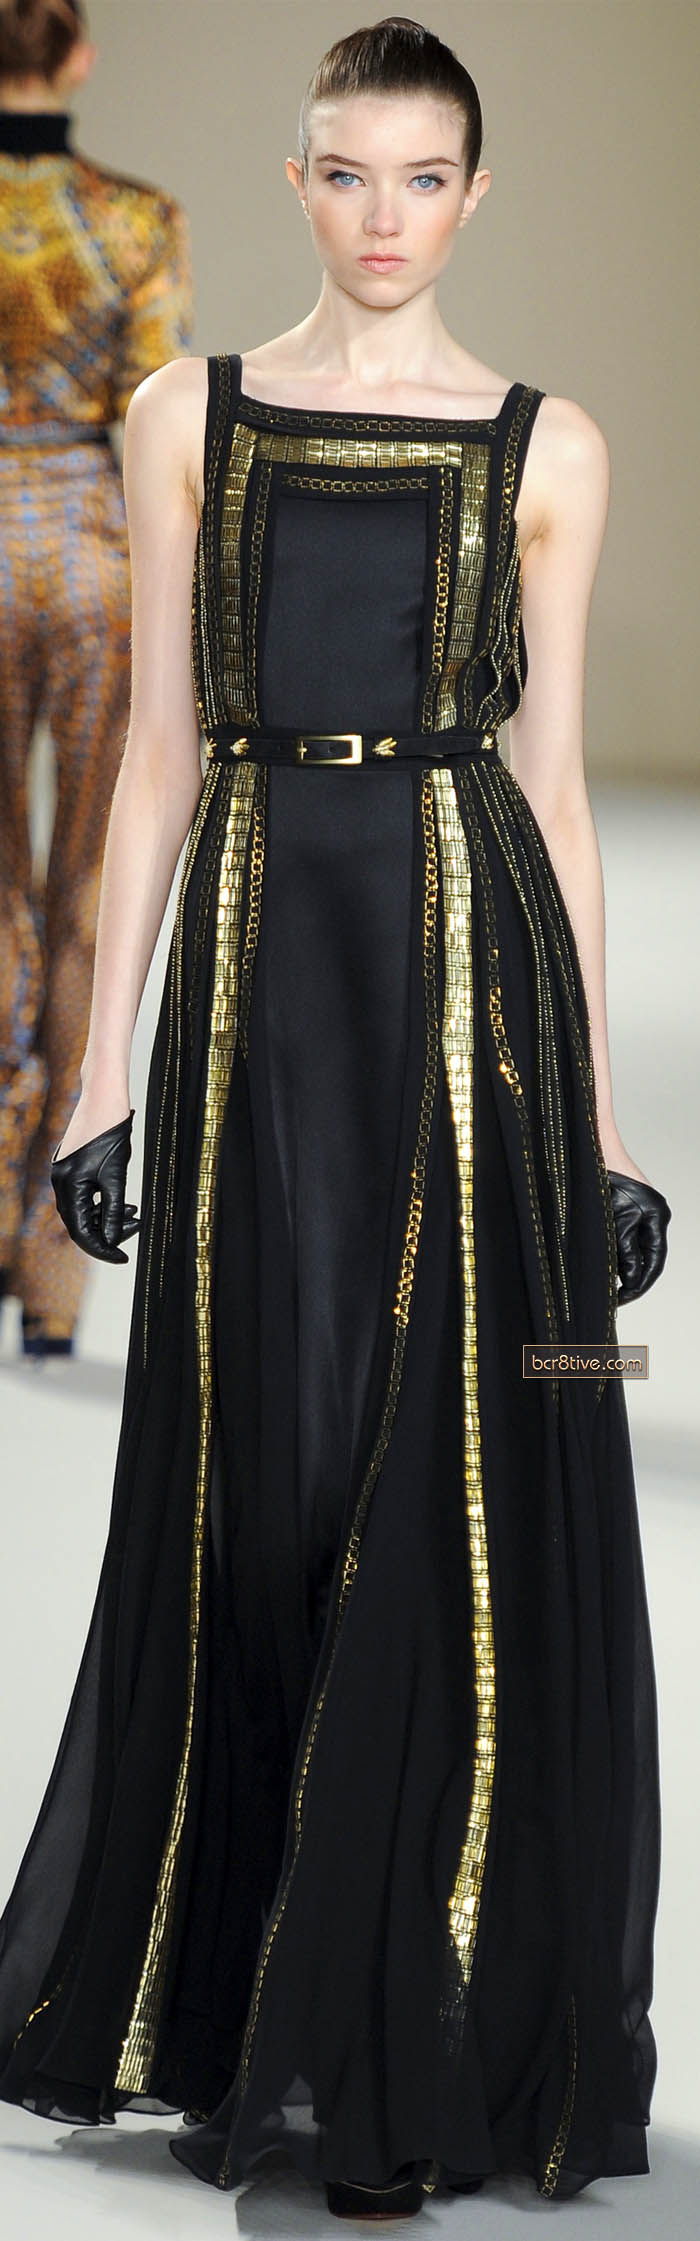 Temperley London Fall Winter 2013